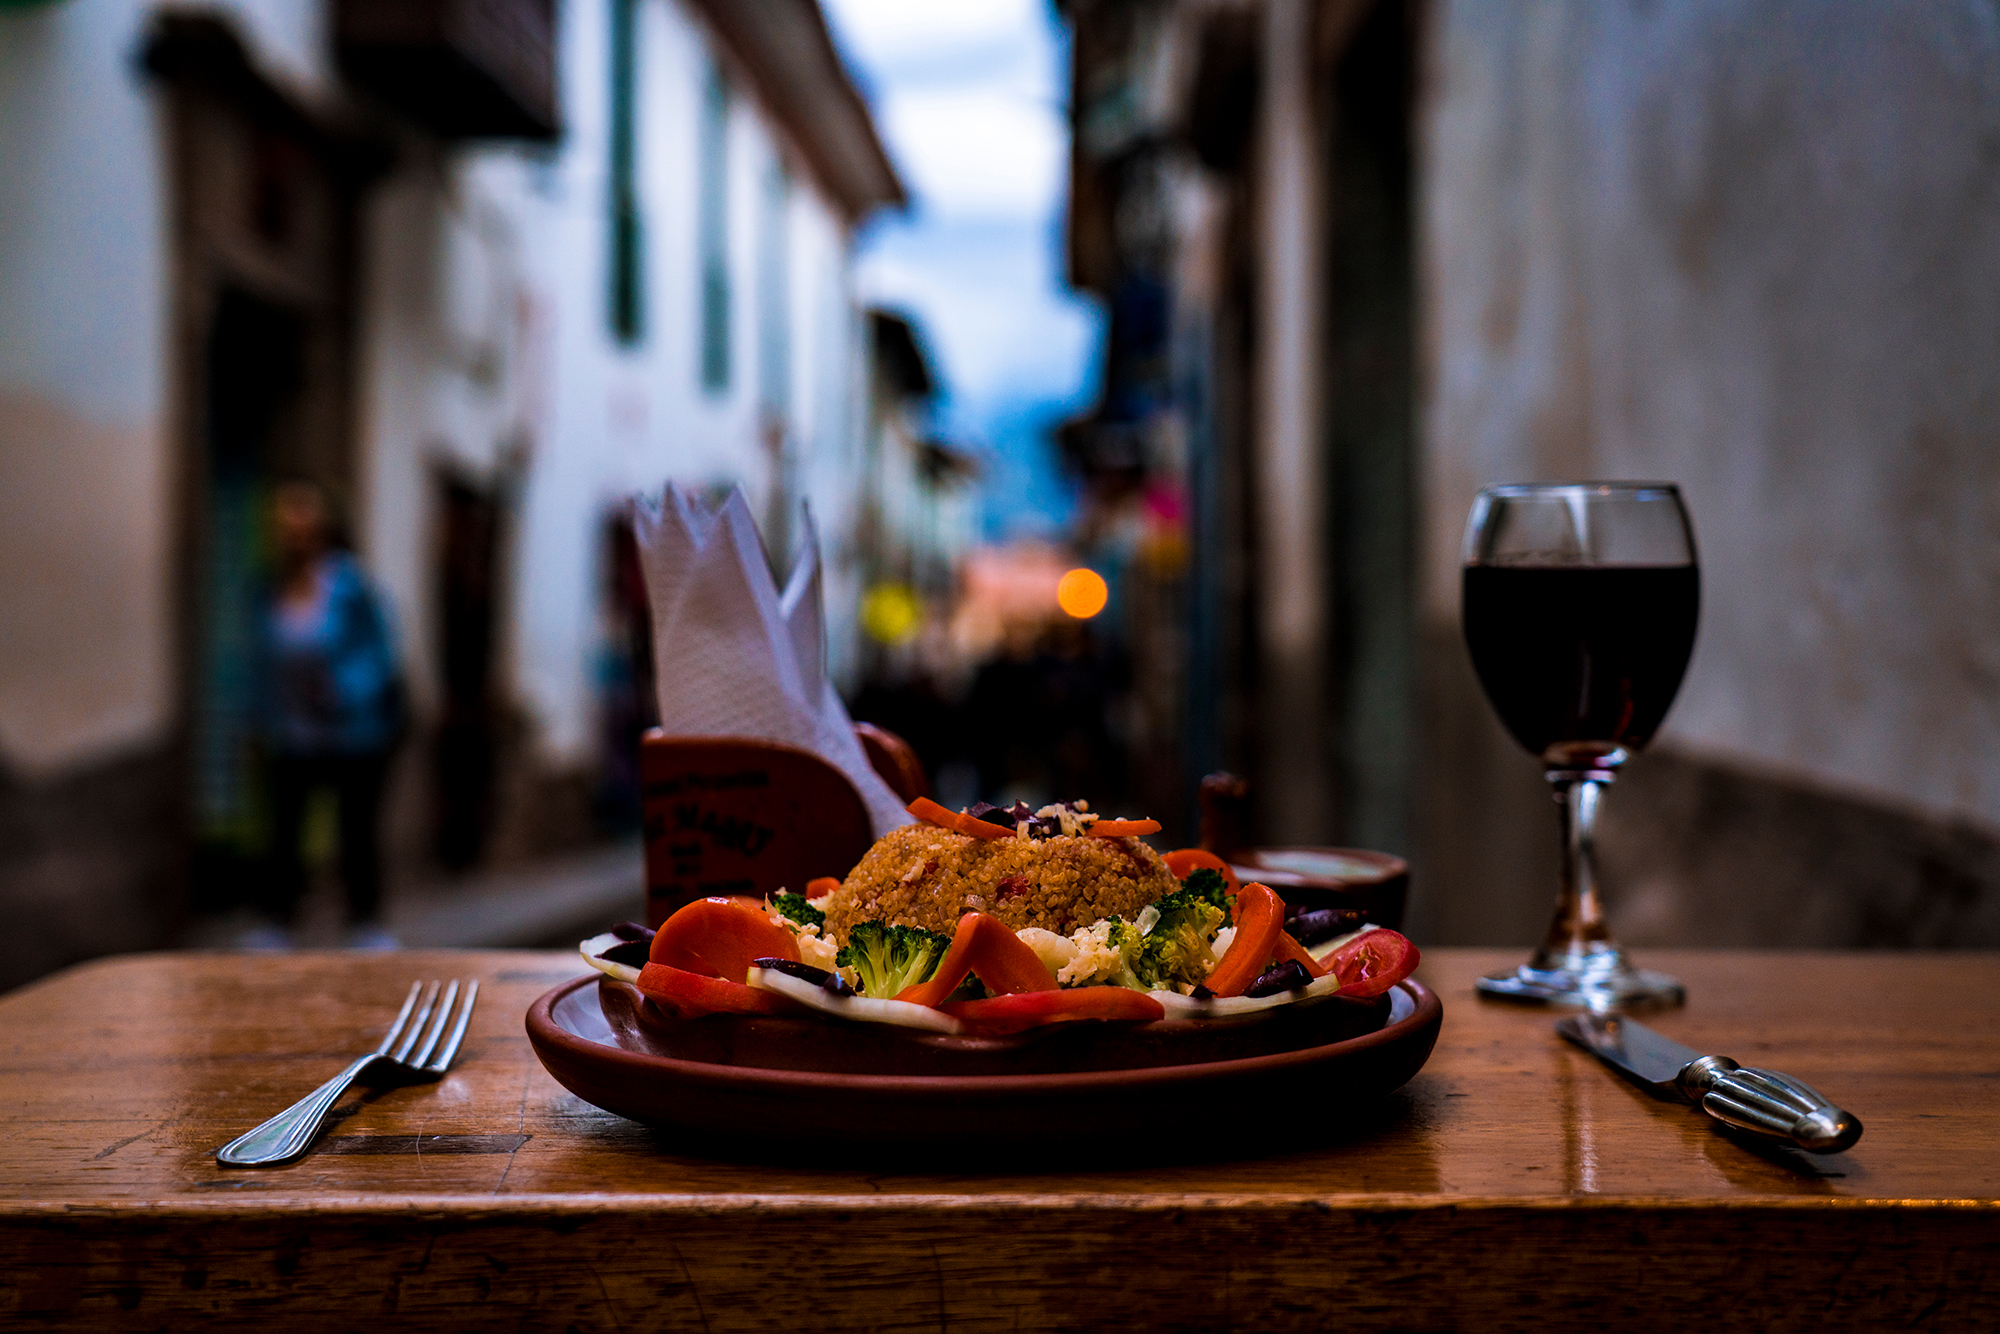 Peruvian cuisine is among the best in the world, and we'd like to show you why